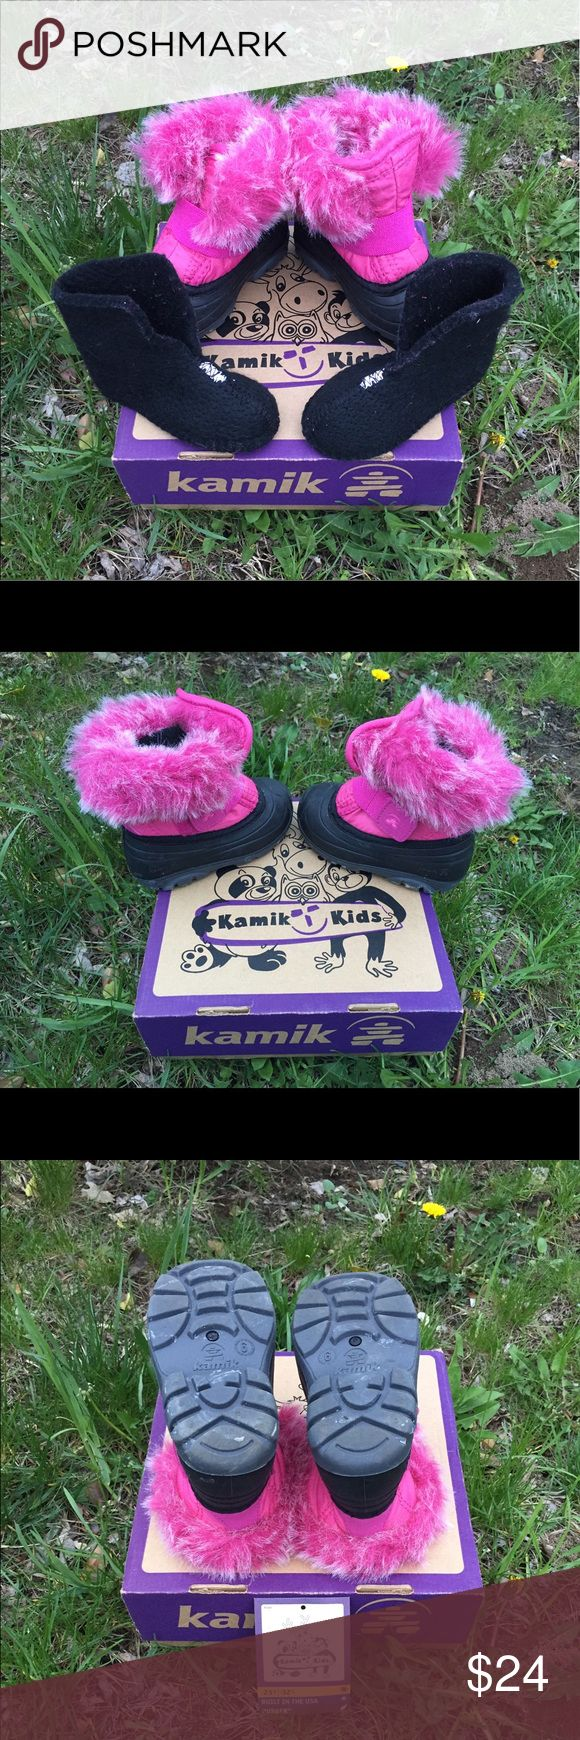 EUC Kamik toddler girls' winter boots These little beauties are amazing! Nearly perfect condition!!!! Size 6!!! Water-proof, with removable liners for washing (which I just washed today!), fuzzy hot pink fake fur tops (to keep your little one's ankles nice and warm). Used 3-4 times, as we had a very short mellow winter this season! Comes with box and care-instruction card. Make in the USA!!! MAKE ME AN OFFER!!  or bundle to save even more!  (The blue in the last couple of photos was my…